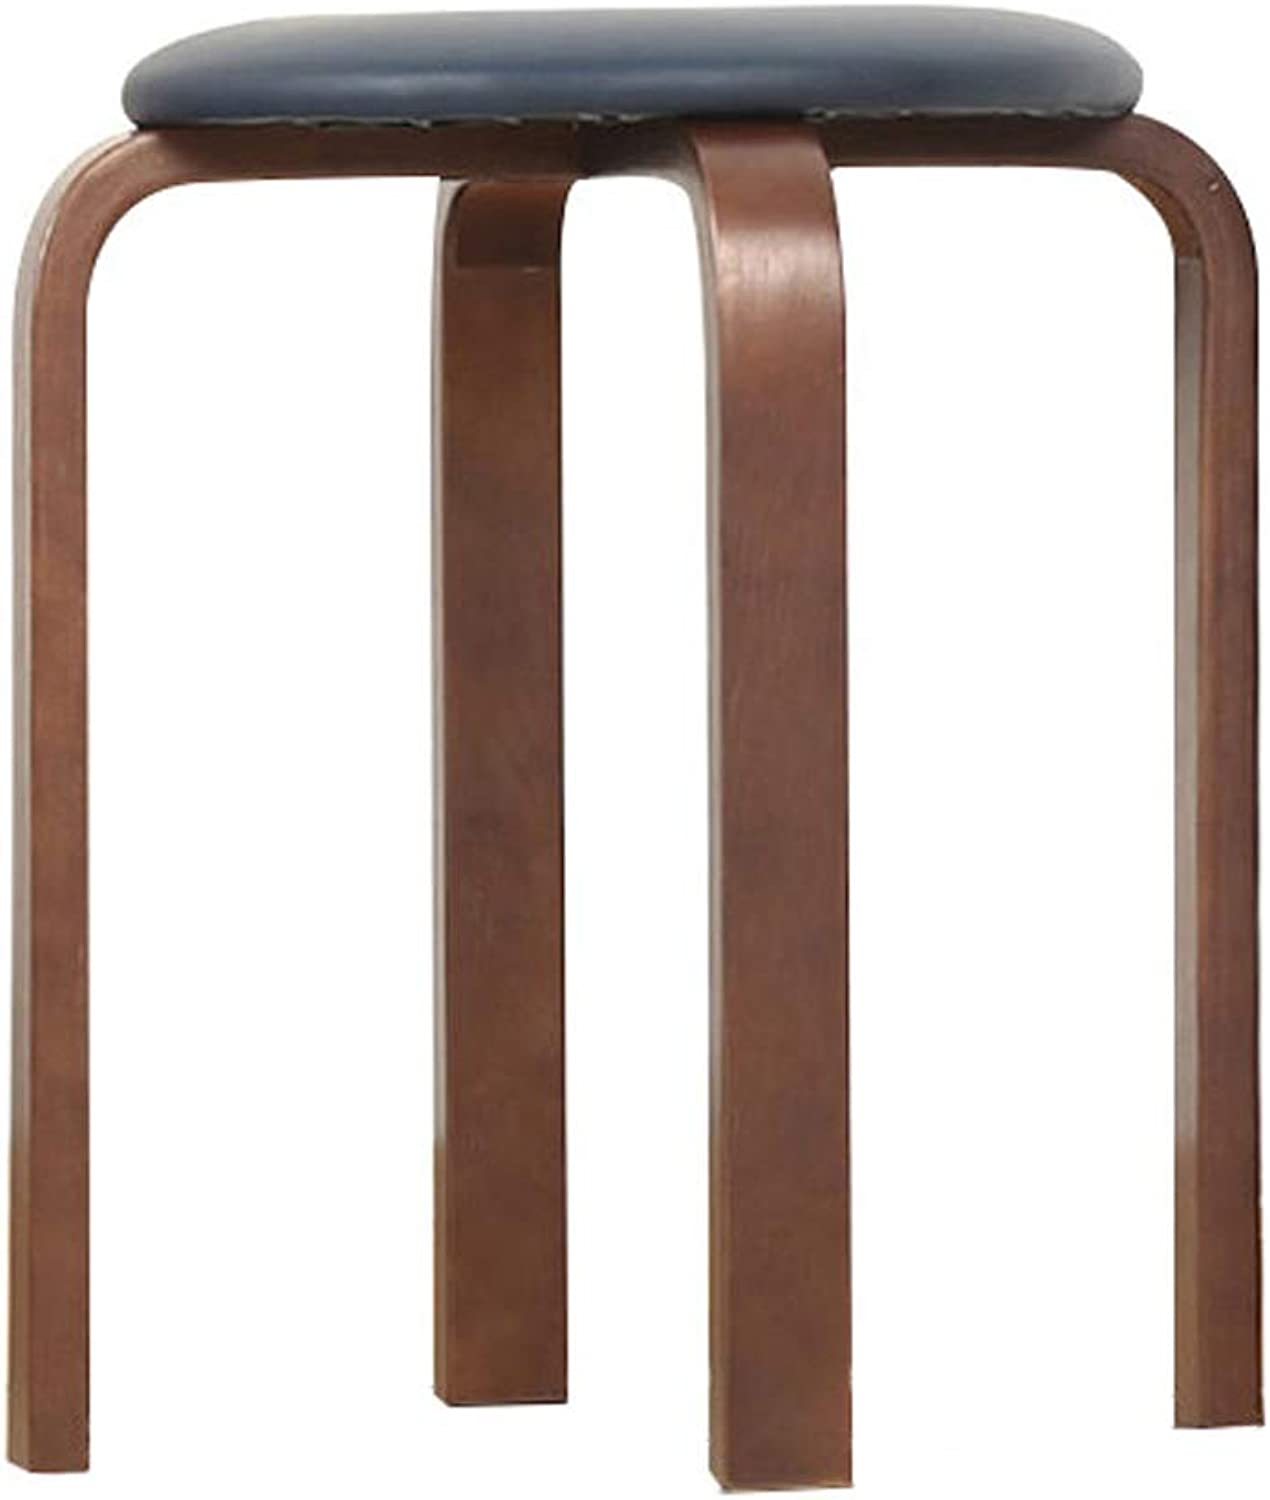 Lxn Modern Simplicity Solid Wood Stool, Home Dining Stool, Fashion Makeup Stool Dressing Stool,PVC Waterproof Cushion - Stackable - 1PCS